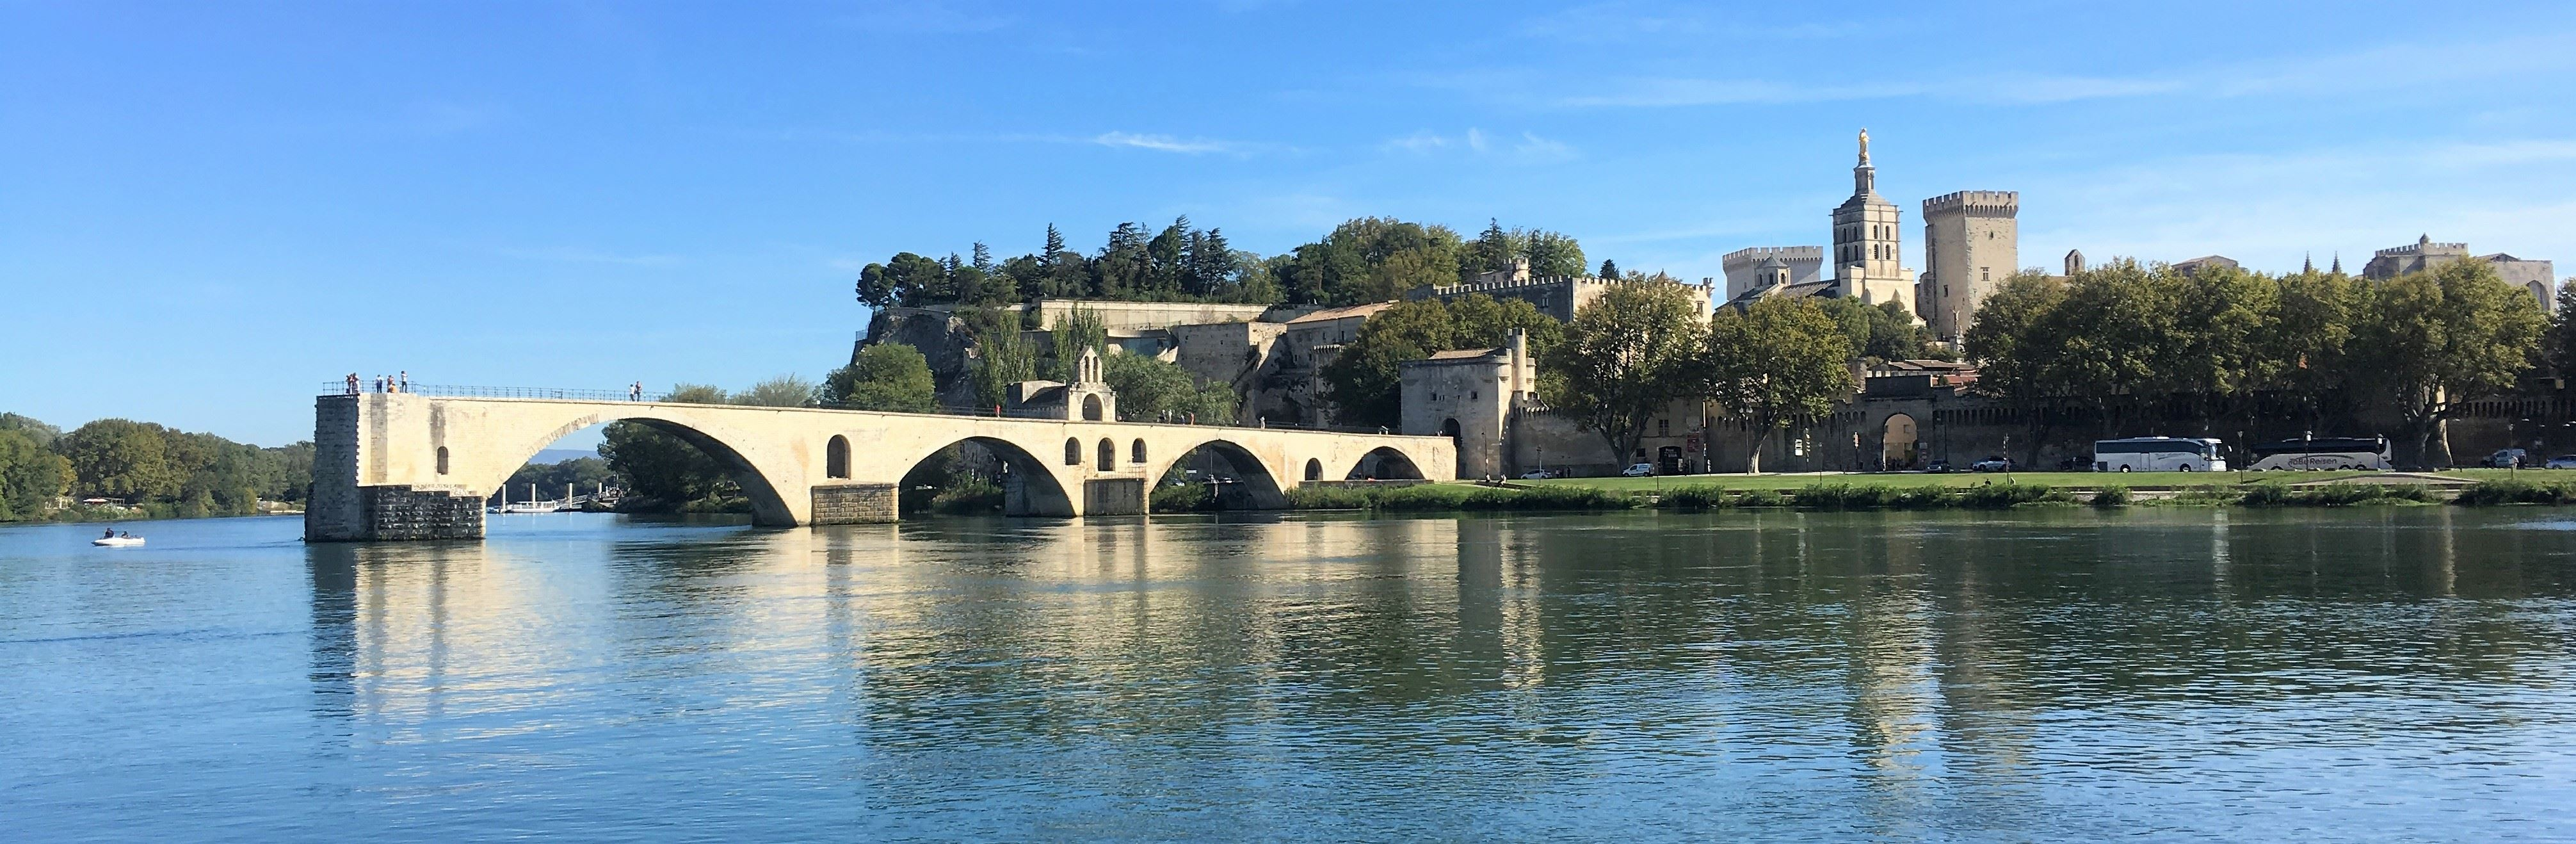 Visit of the Pope's Palace and the Avignon bridge - Rate Railbookers